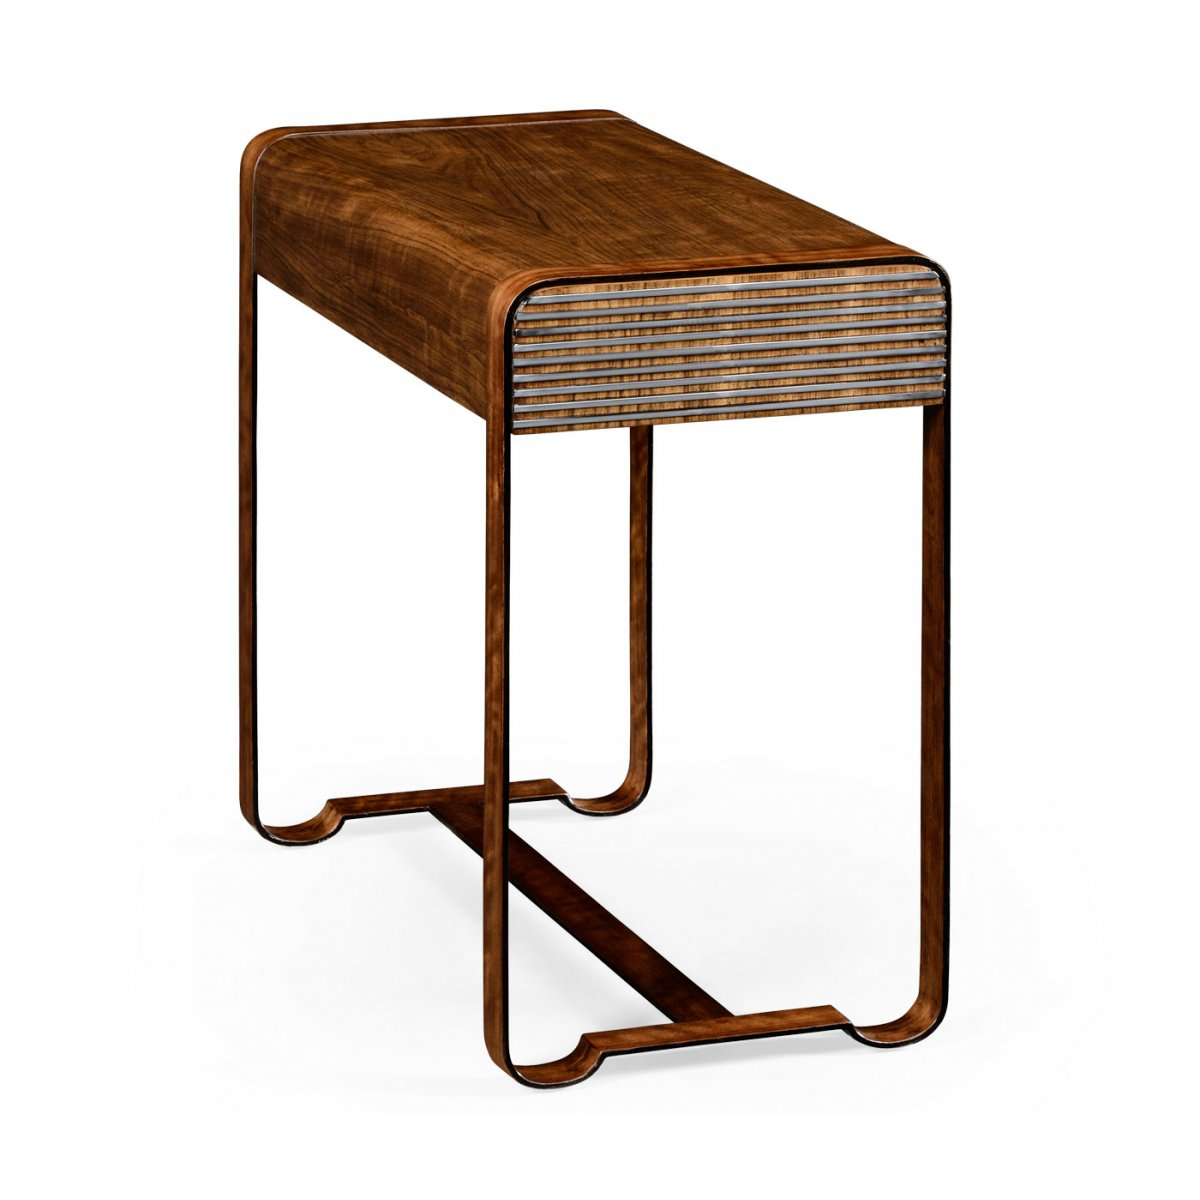 Retro side table retro furniture swanky interiors for Retro side table